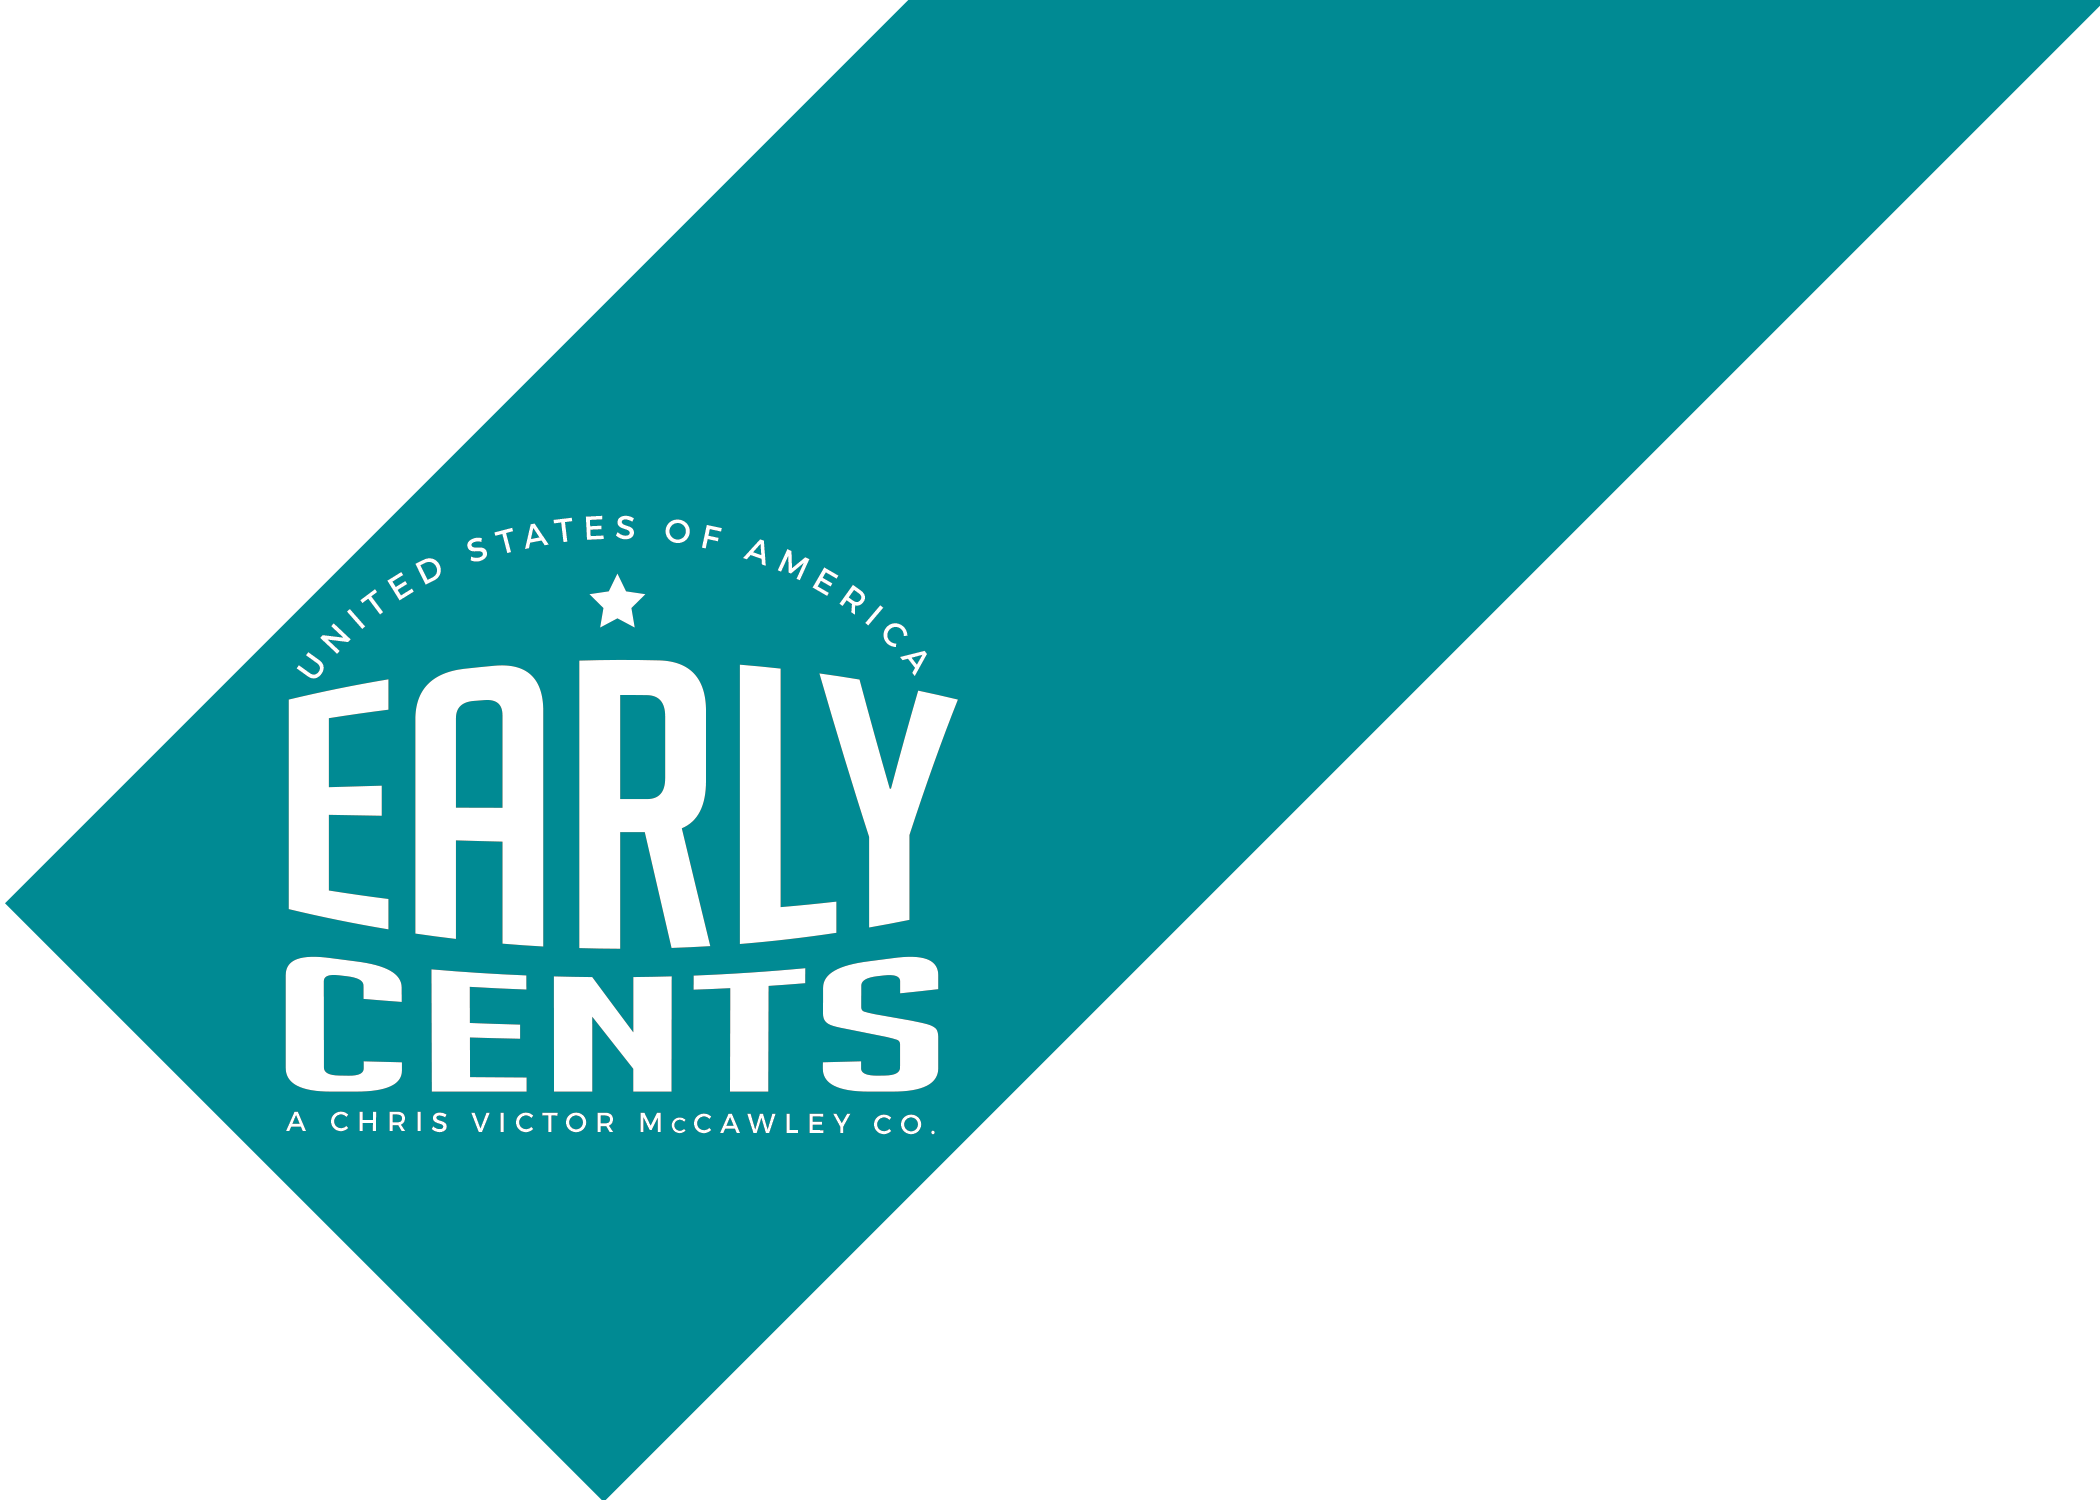 Early Cents